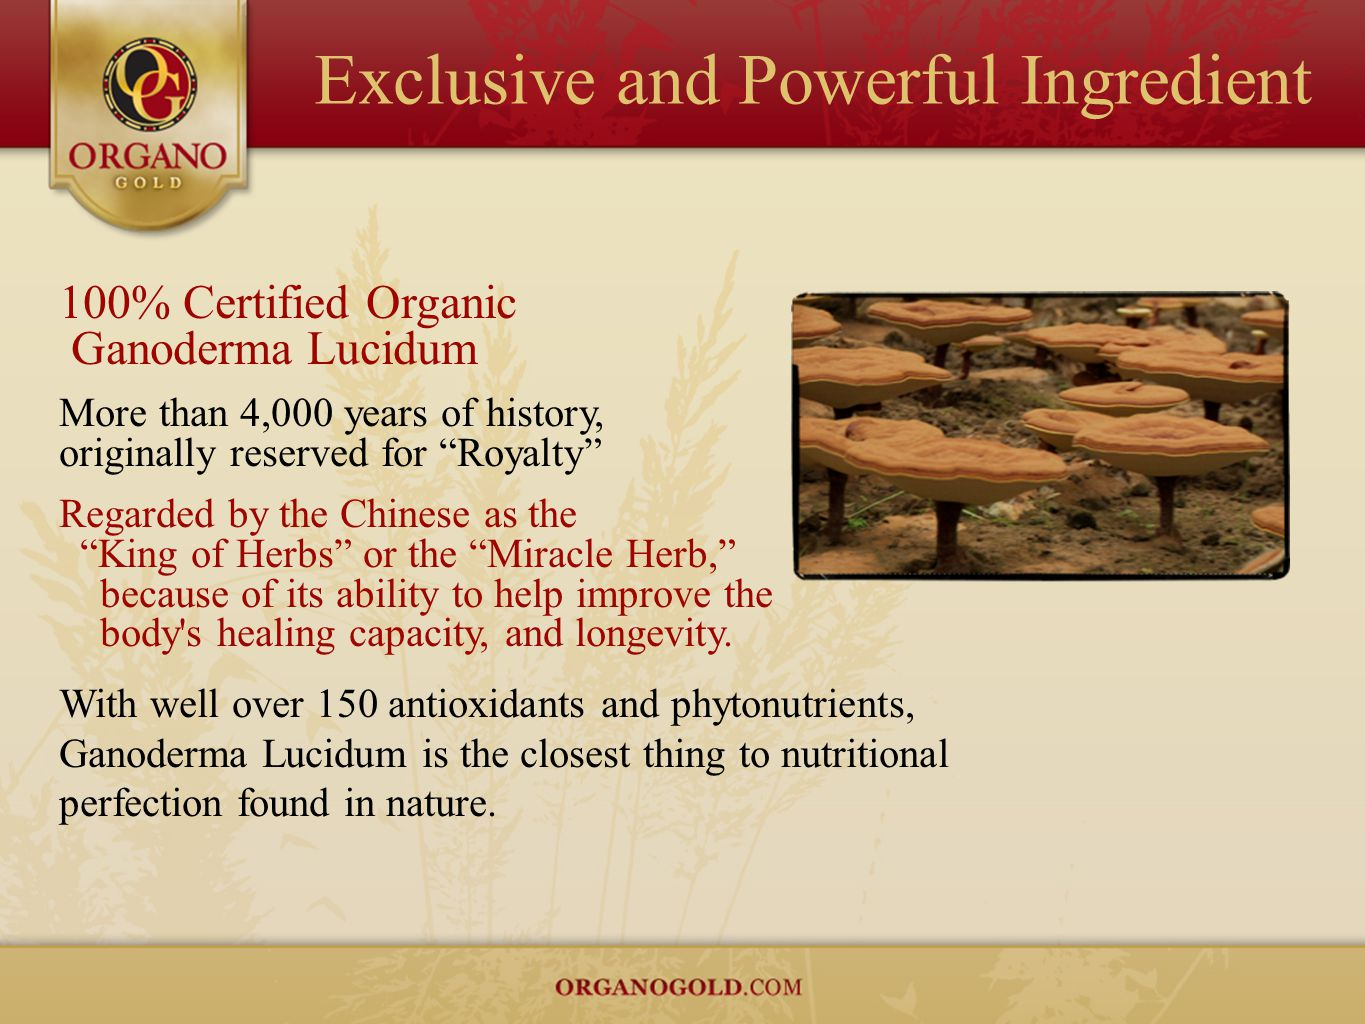 Exclusive and Powerful Ingredient